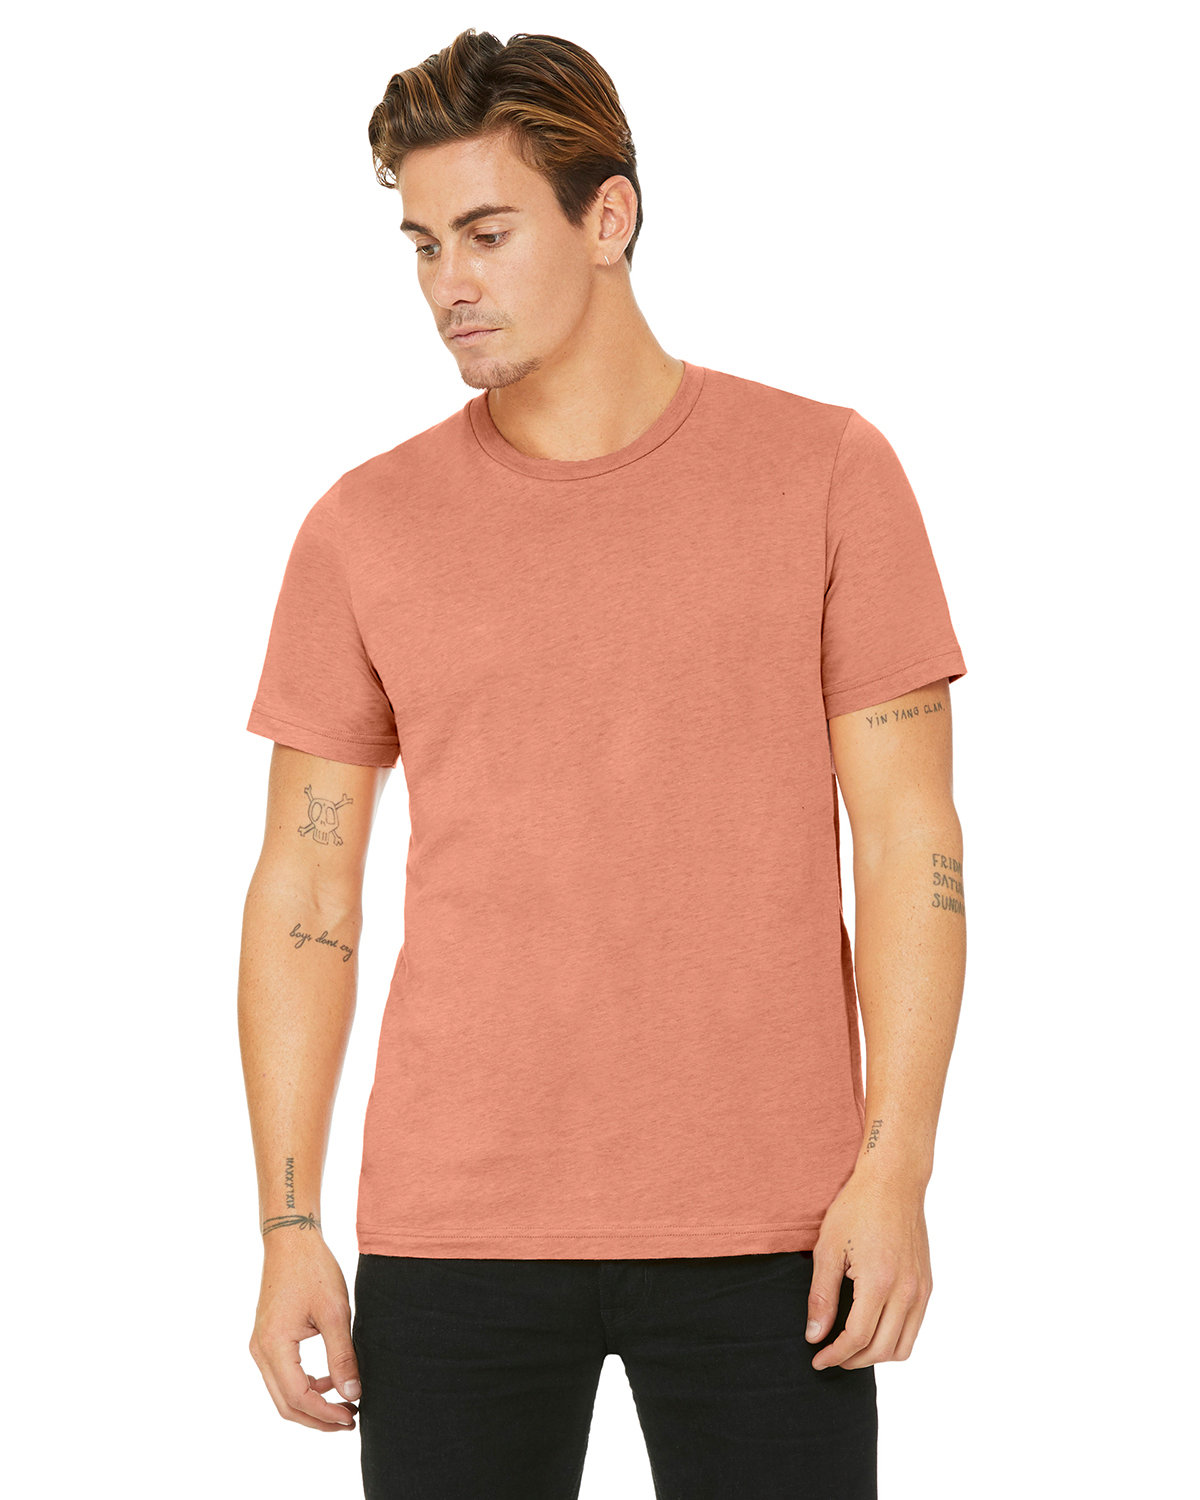 Bella + Canvas Unisex Heather CVC T-Shirt HTHR PRSM SUNSET